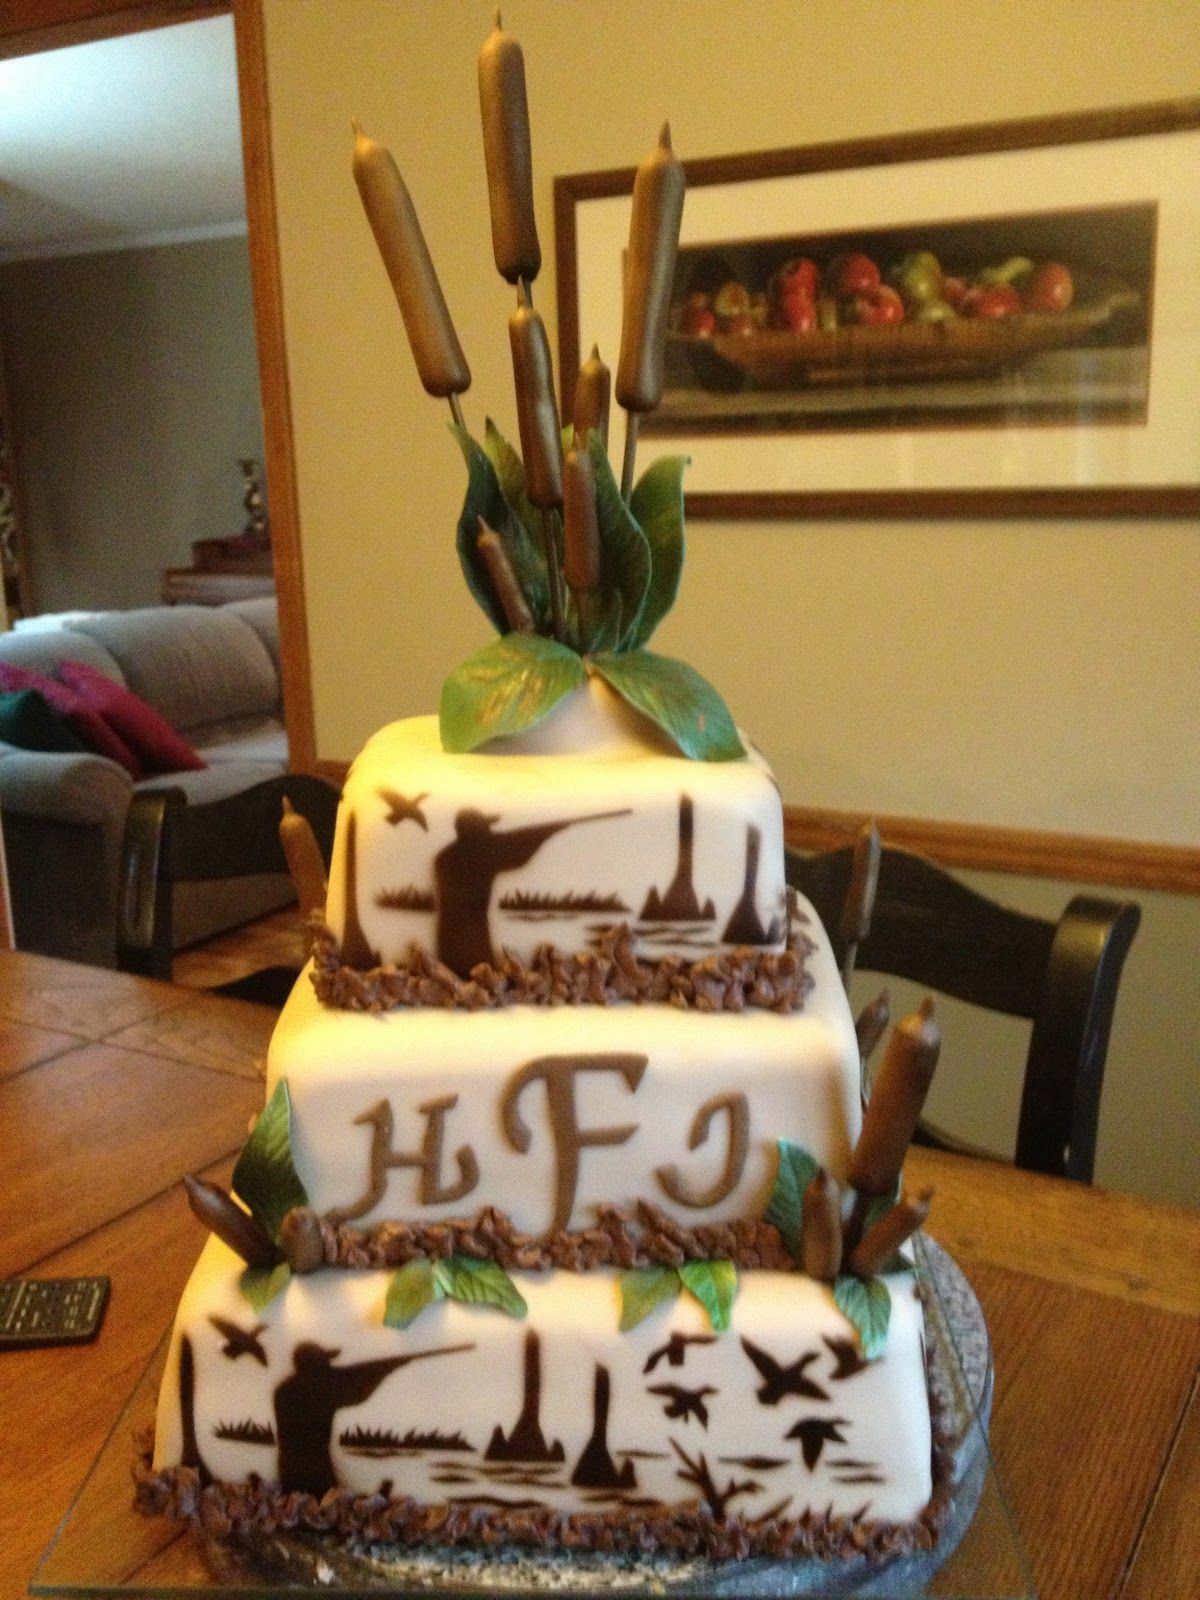 Duck Hunting Cake Decorations : Duck Hunting Groom s Cake What kind of cake would an ...